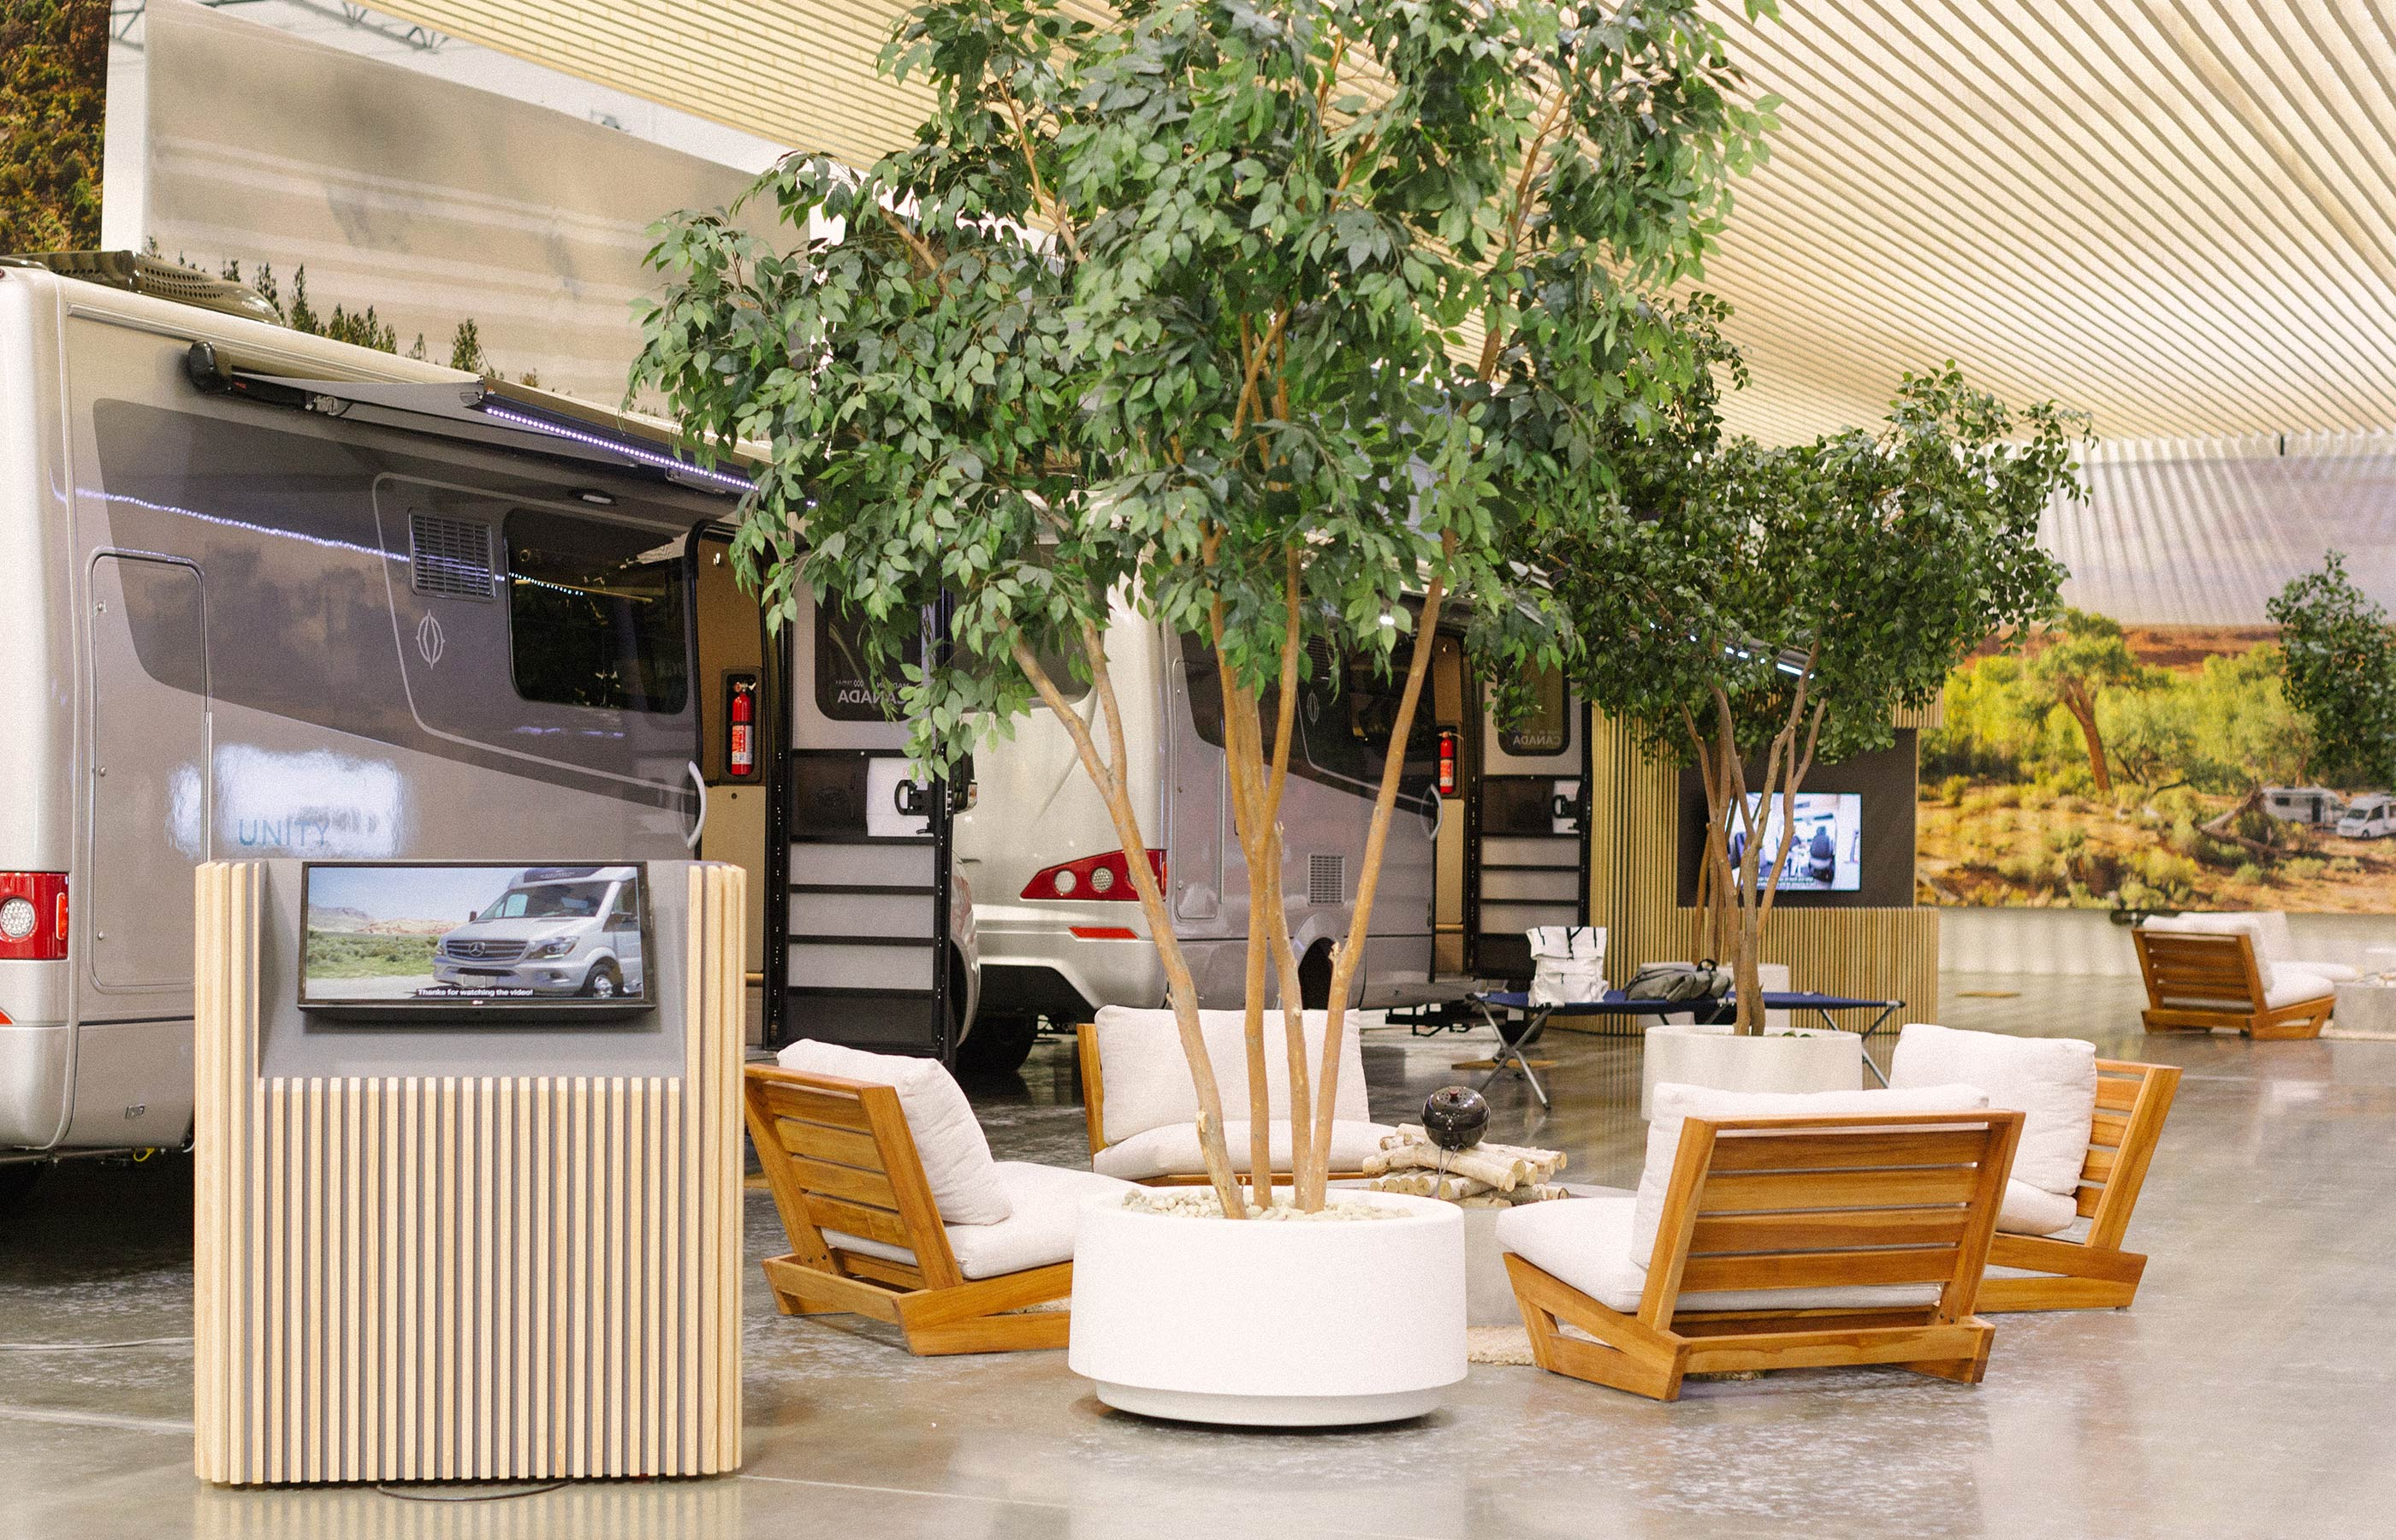 Rv Show California 2020.Manufacturers Rv Show And Sale Leisure Travel Vans